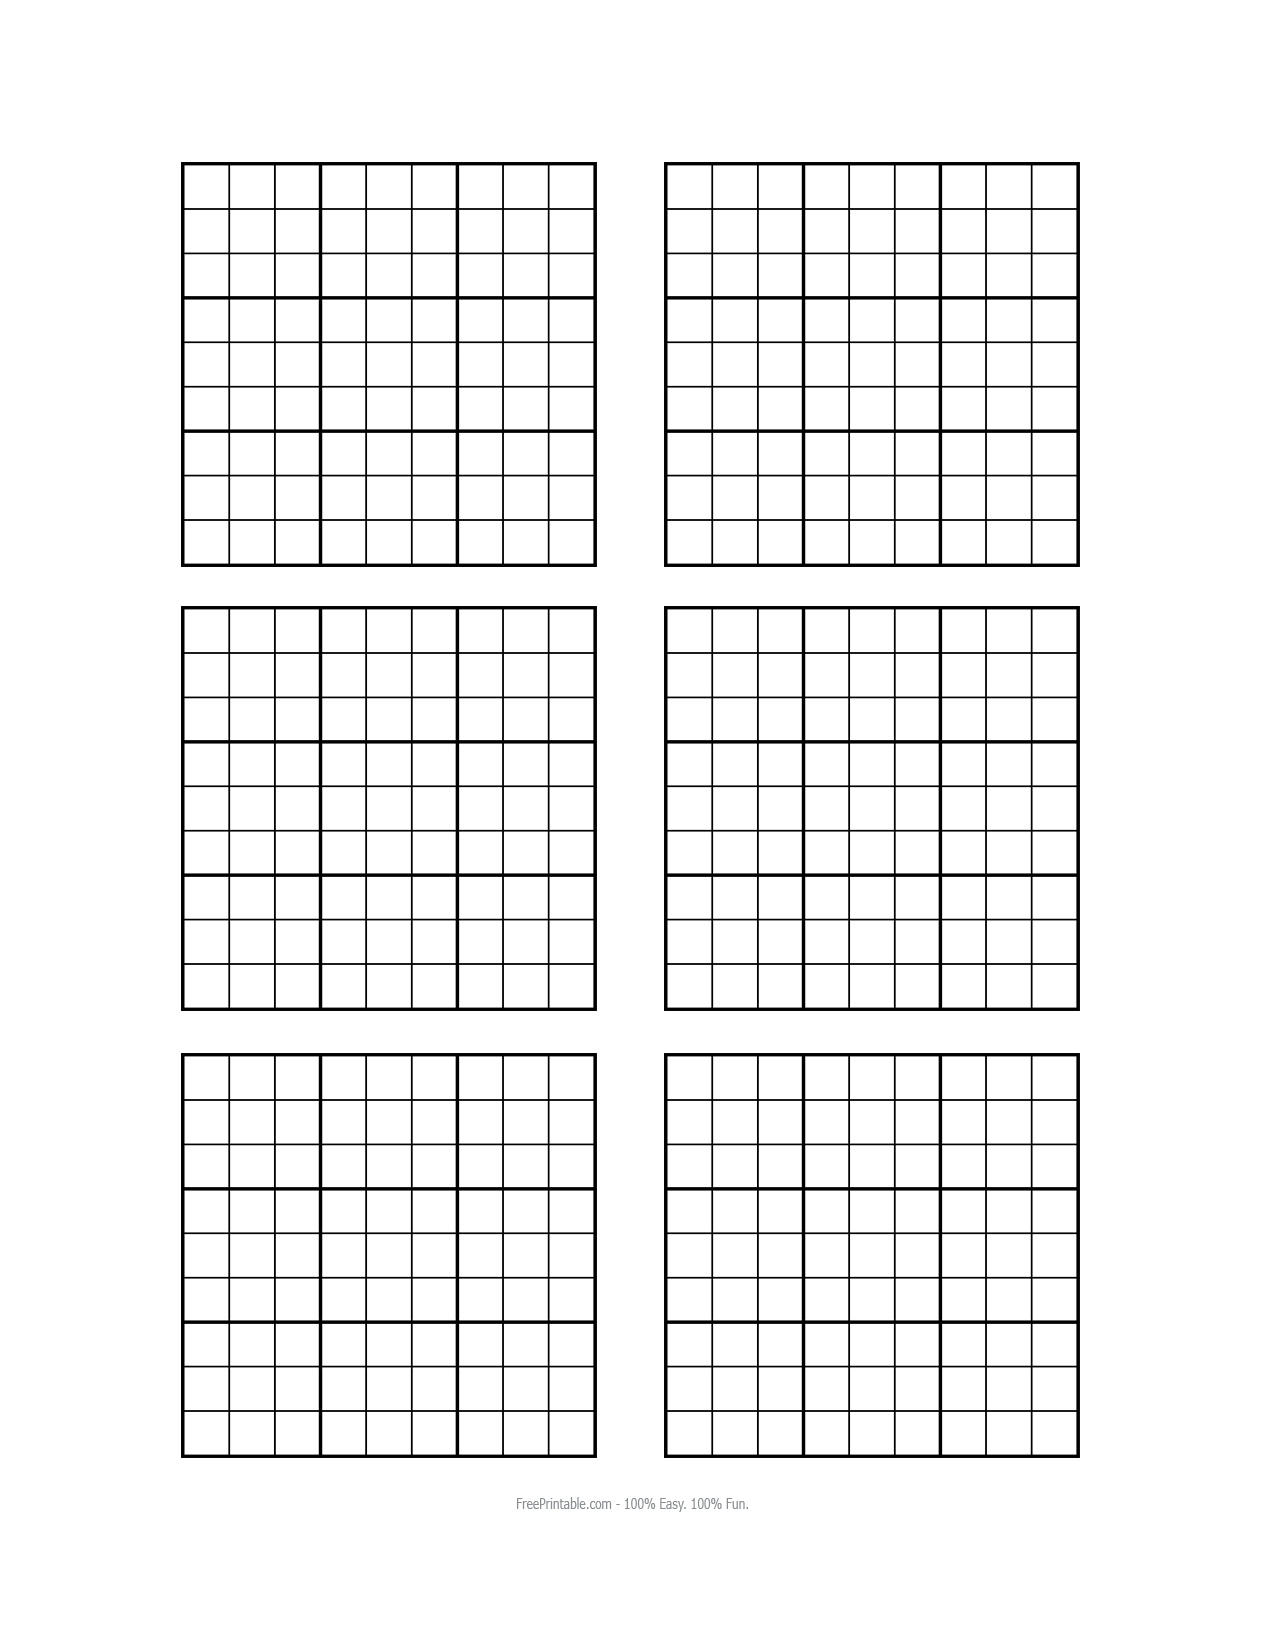 Search Results For Sudoku Blank Page To Print Calendar